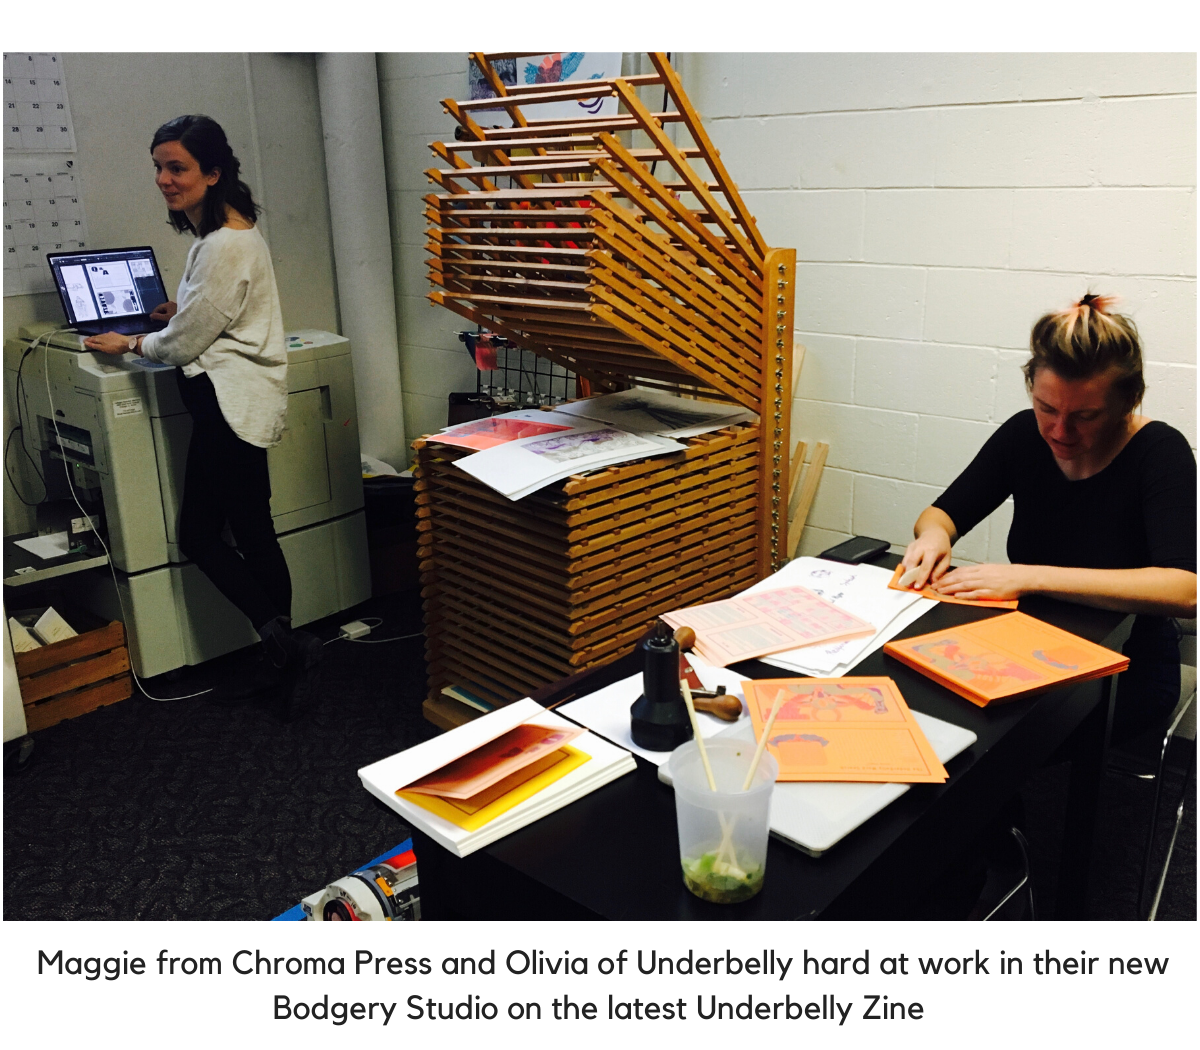 Chroma Press hard at work at the Bodgery